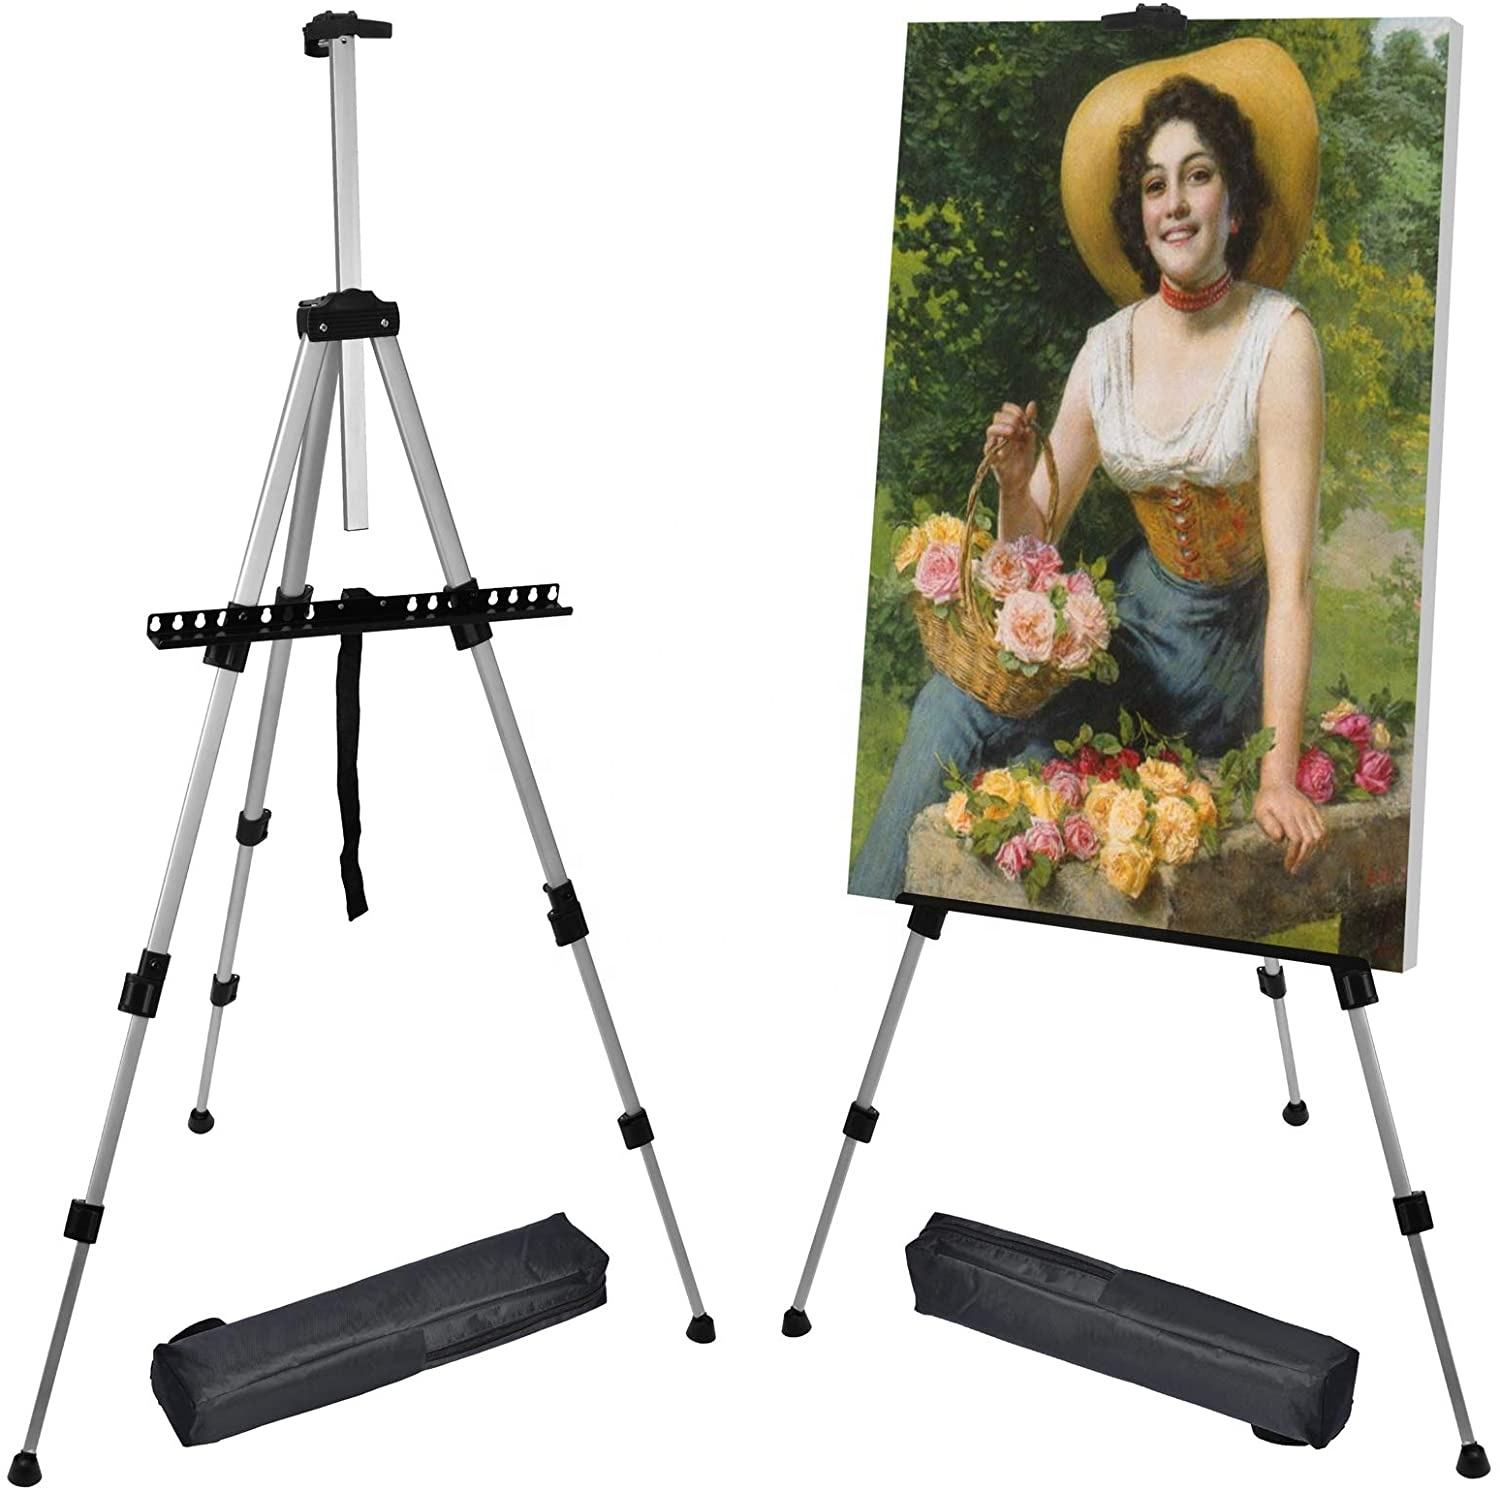 66 Inch Easel Stand Artist, Upgrade Art Paint Easle Aluminum Metal Tripod Display 17 to 66 Inch Adjustable Height Drawing